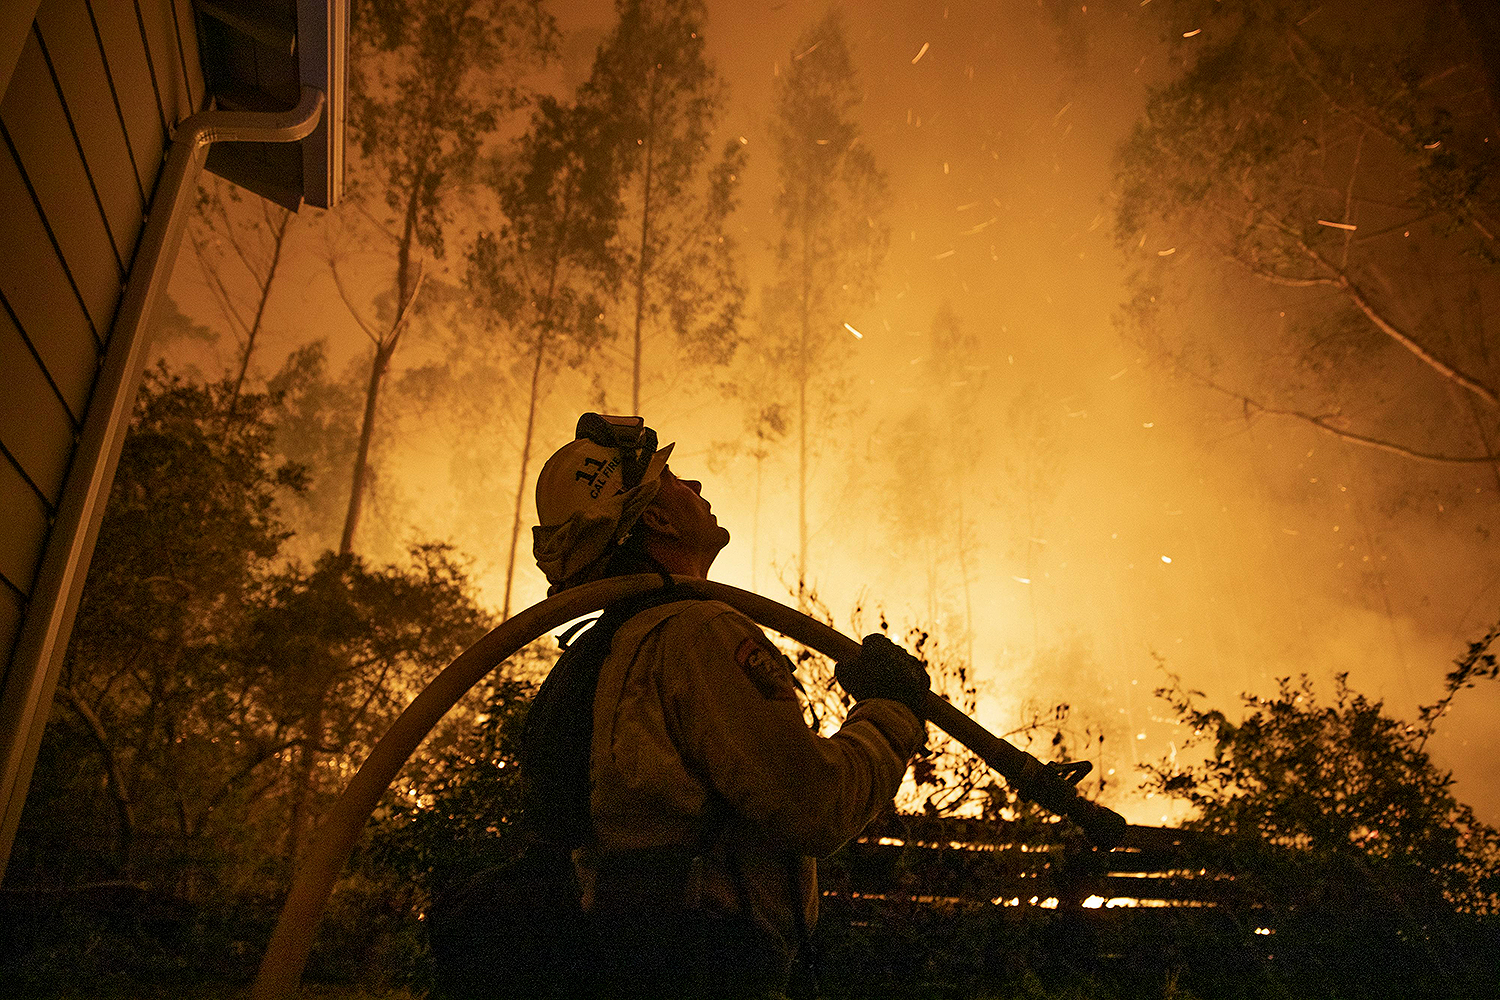 A firefighter attempts to put out a wildfire in San Mateo, California, on Aug. 19. Liu Guanguan/China News Service via Getty Images